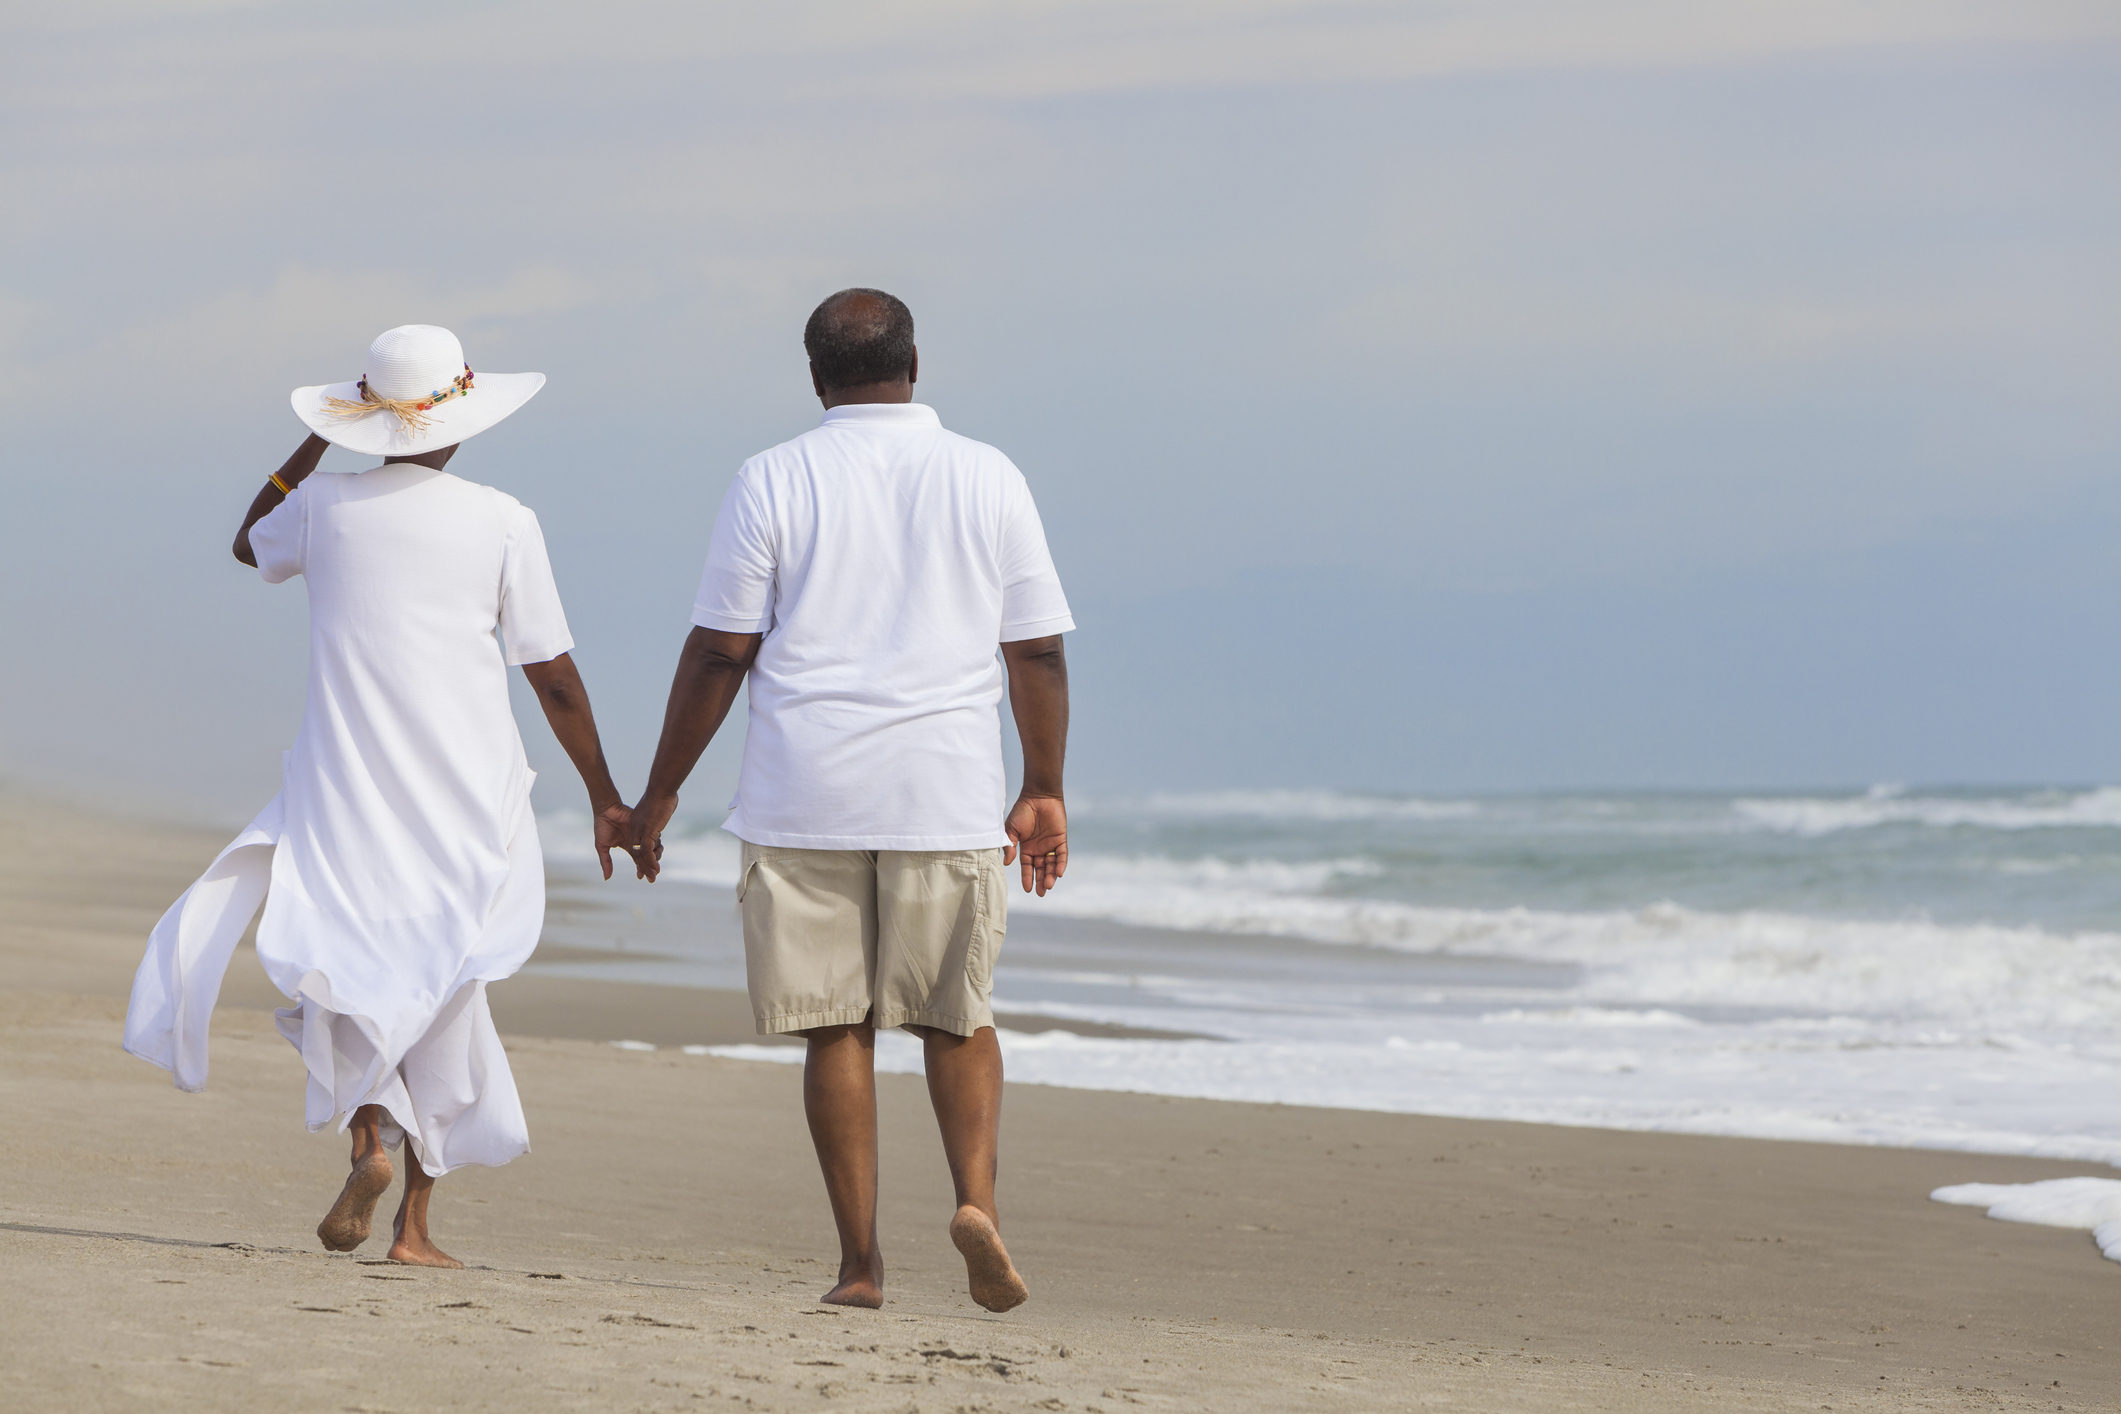 An older couple holds hands while walking across the beach.